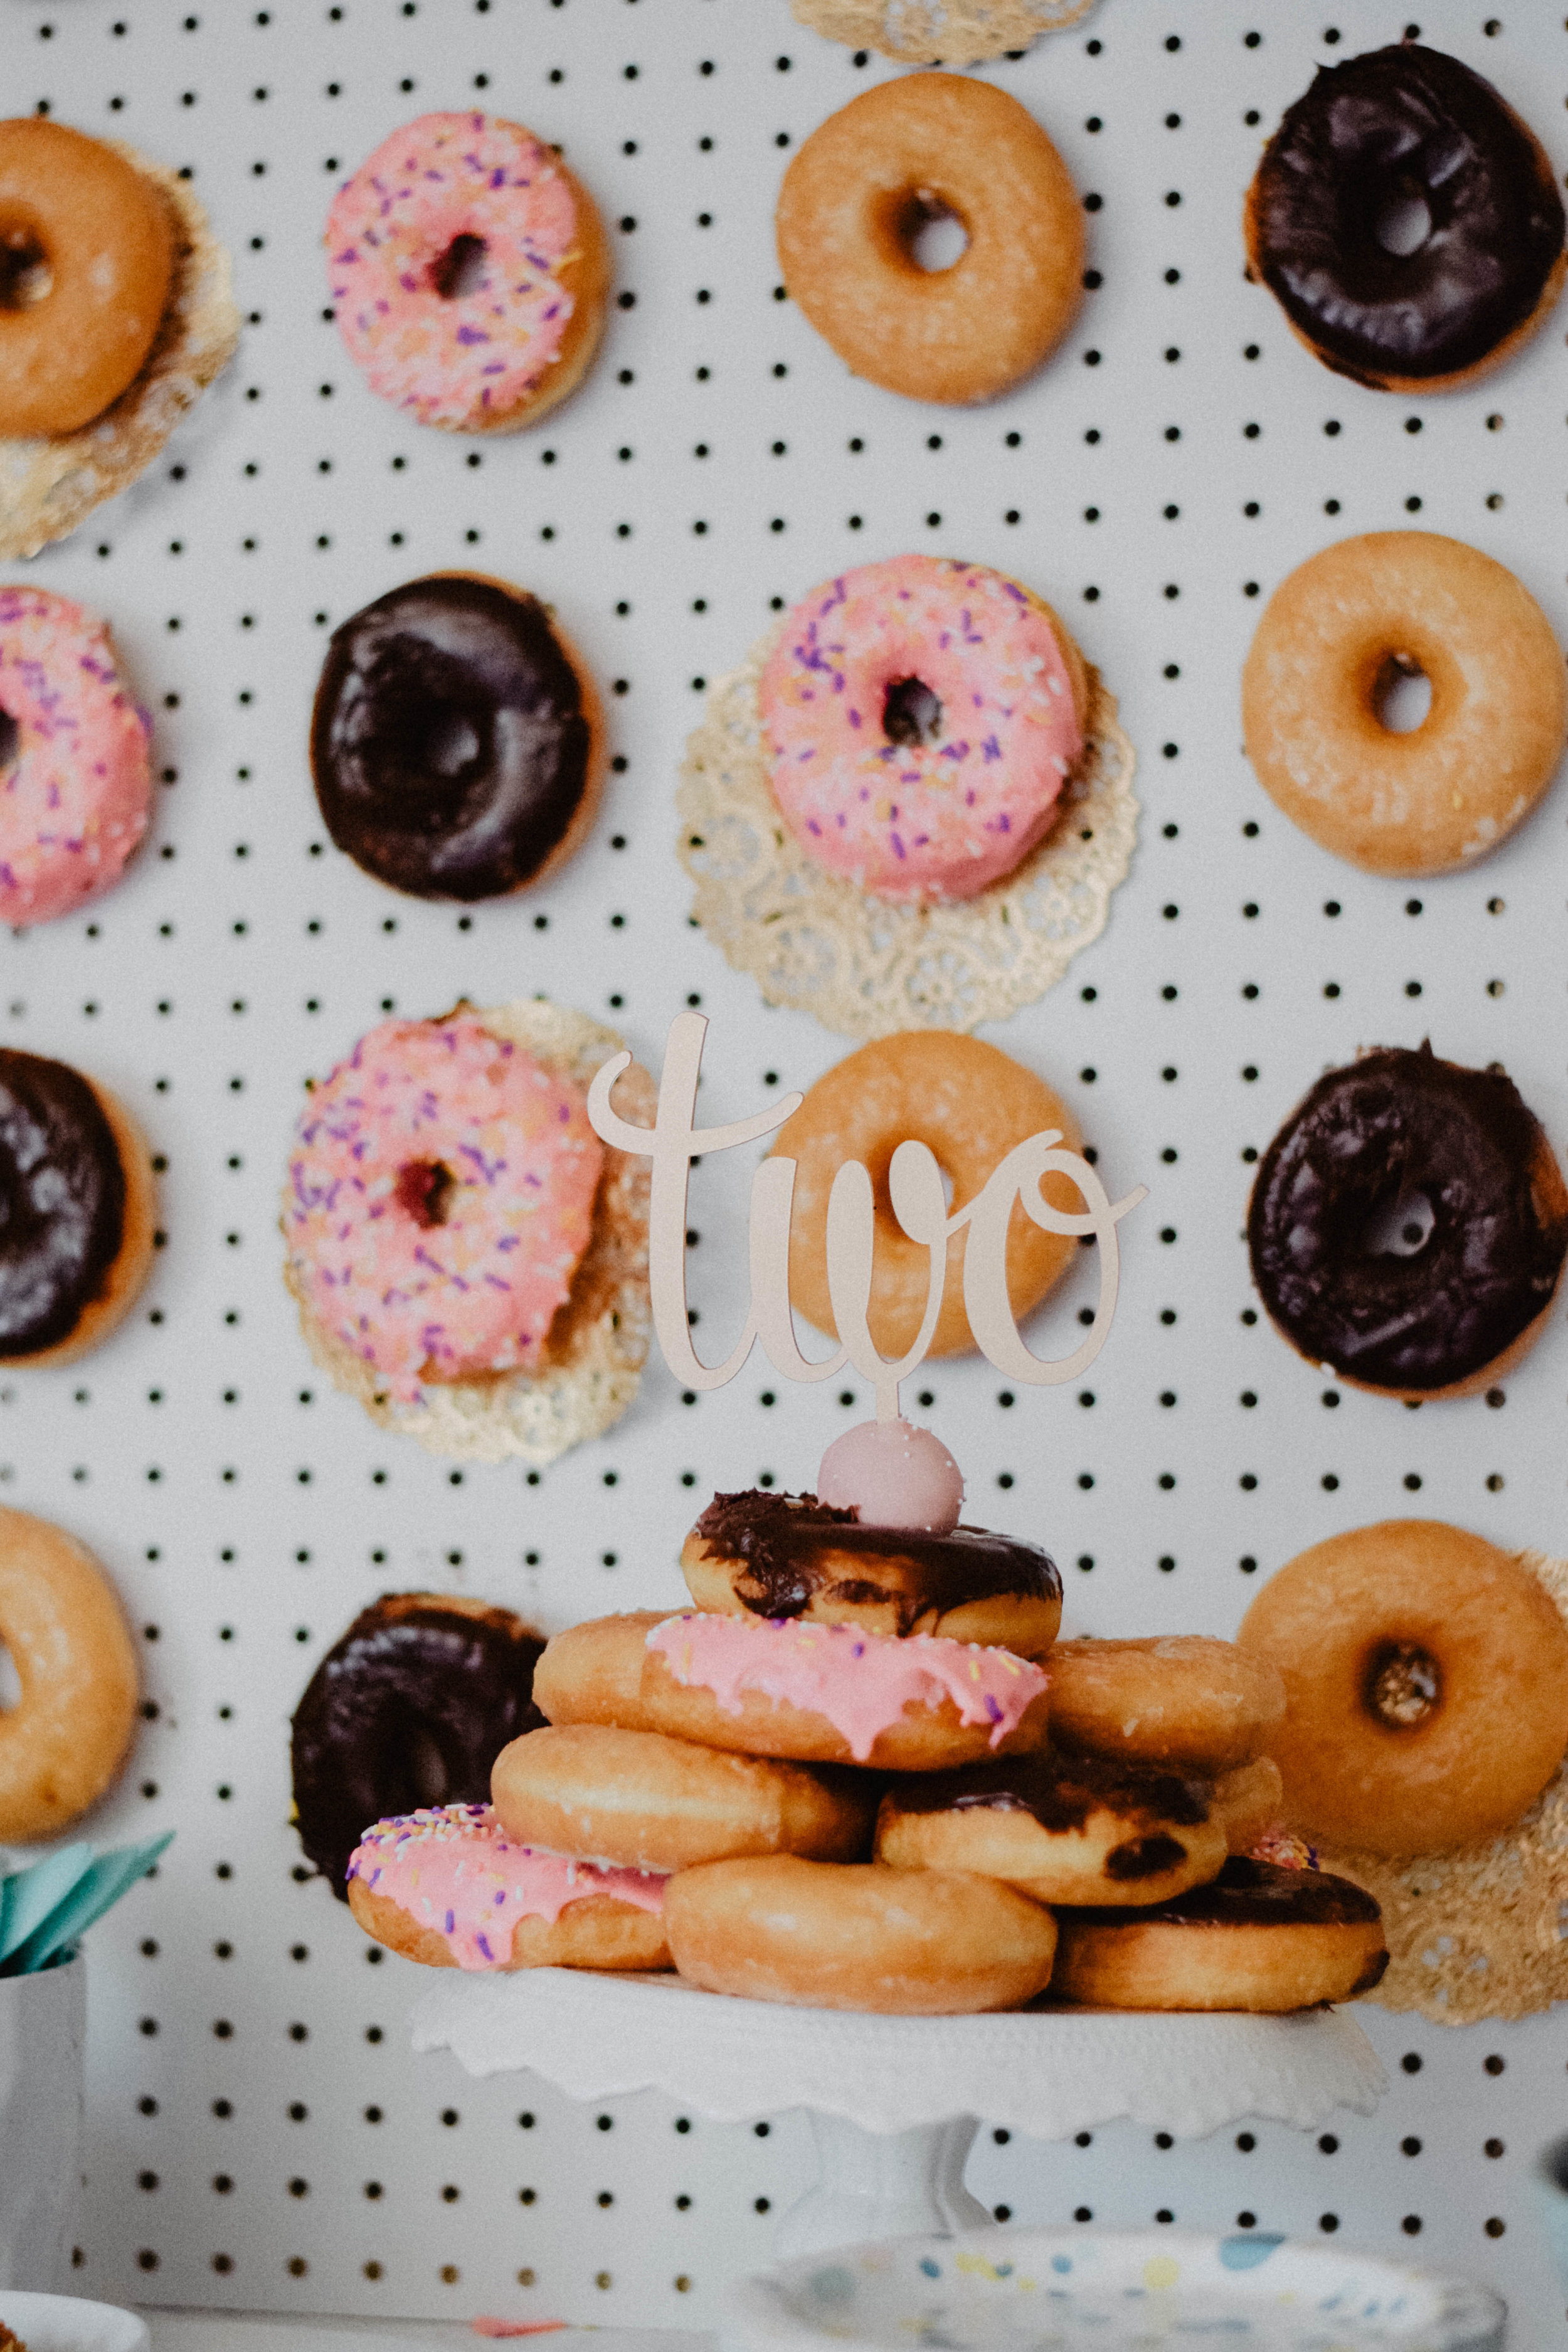 Doggies + Donuts -- Ava's Donut Themed 2nd Birthday Party - Rent Puppies for Birthday Party - The Overwhelmed Mommy